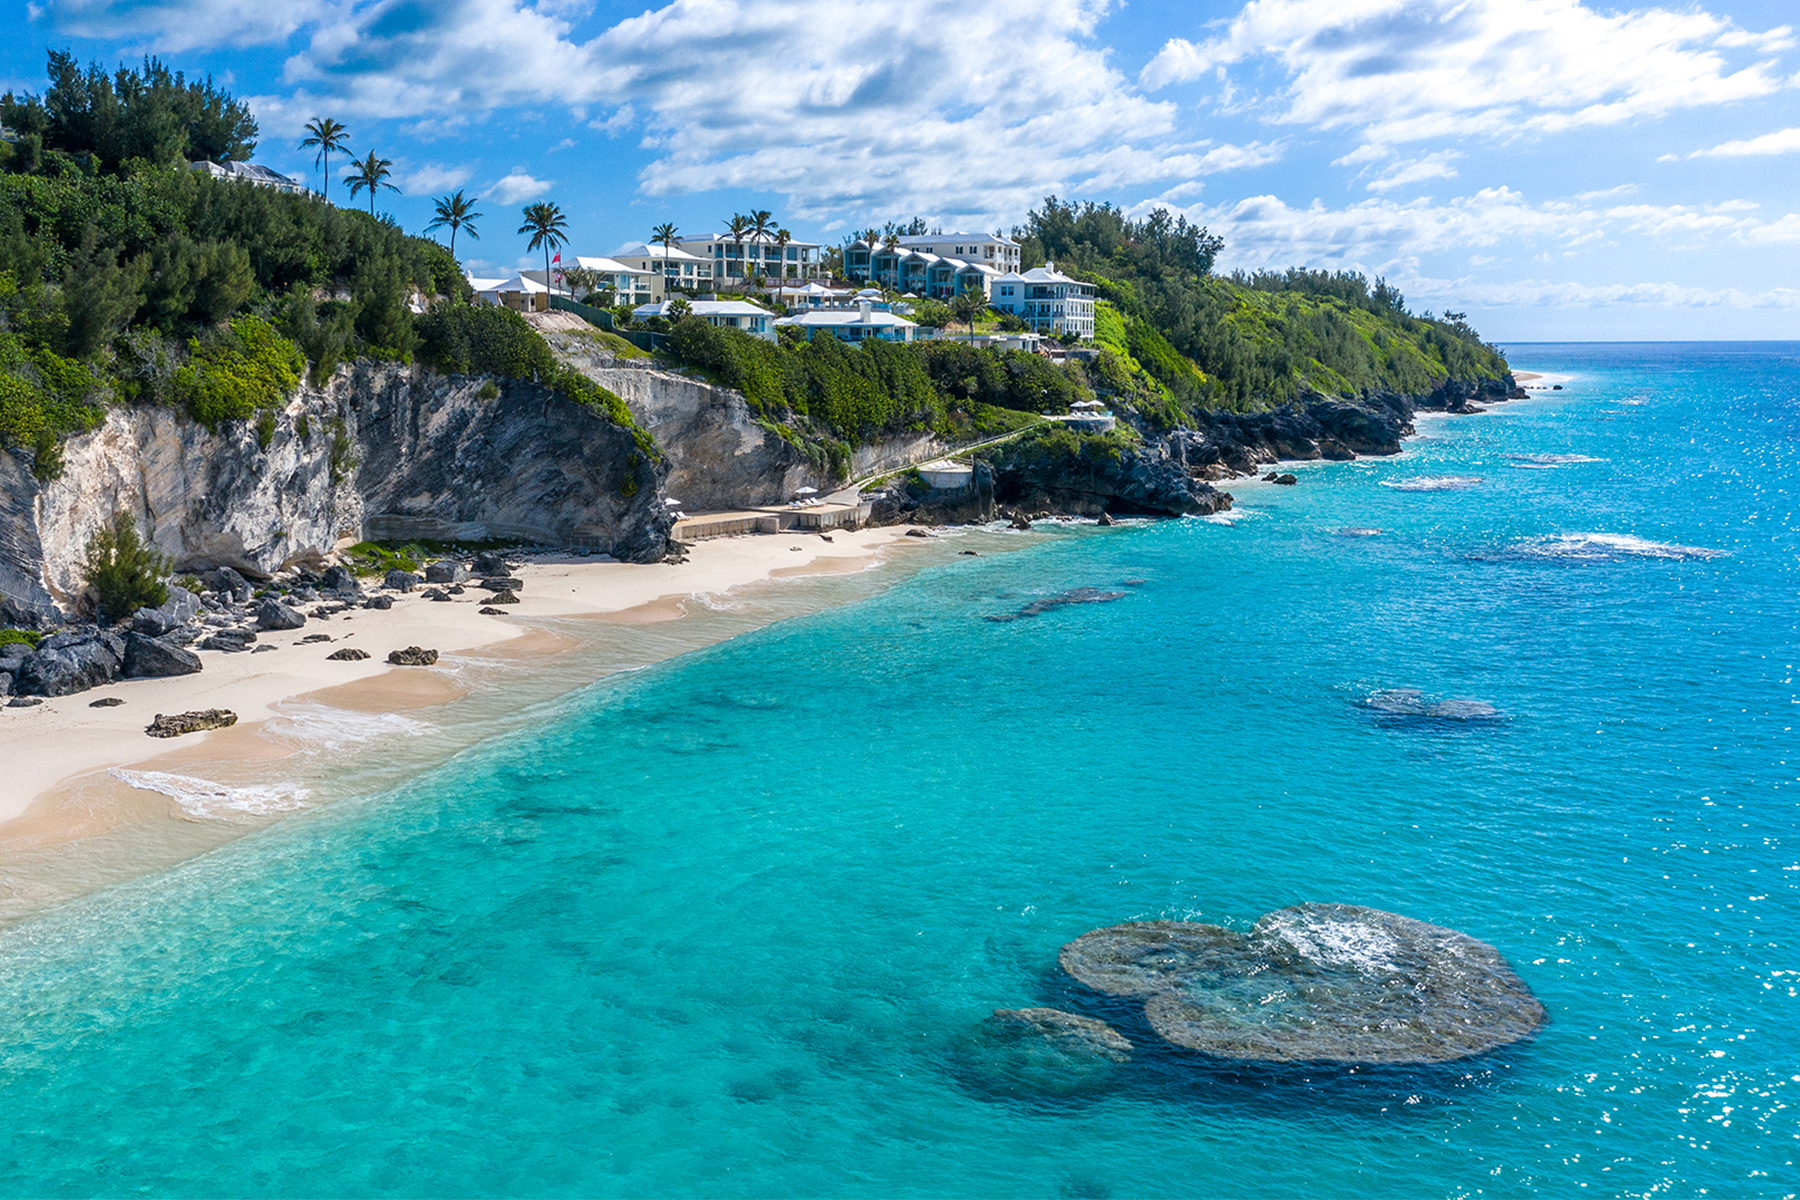 townhouses for Sale at Azura Edgewater 2-Bed Villa 90 South Road Warwick, Other Areas In Bermuda PG04 Bermuda